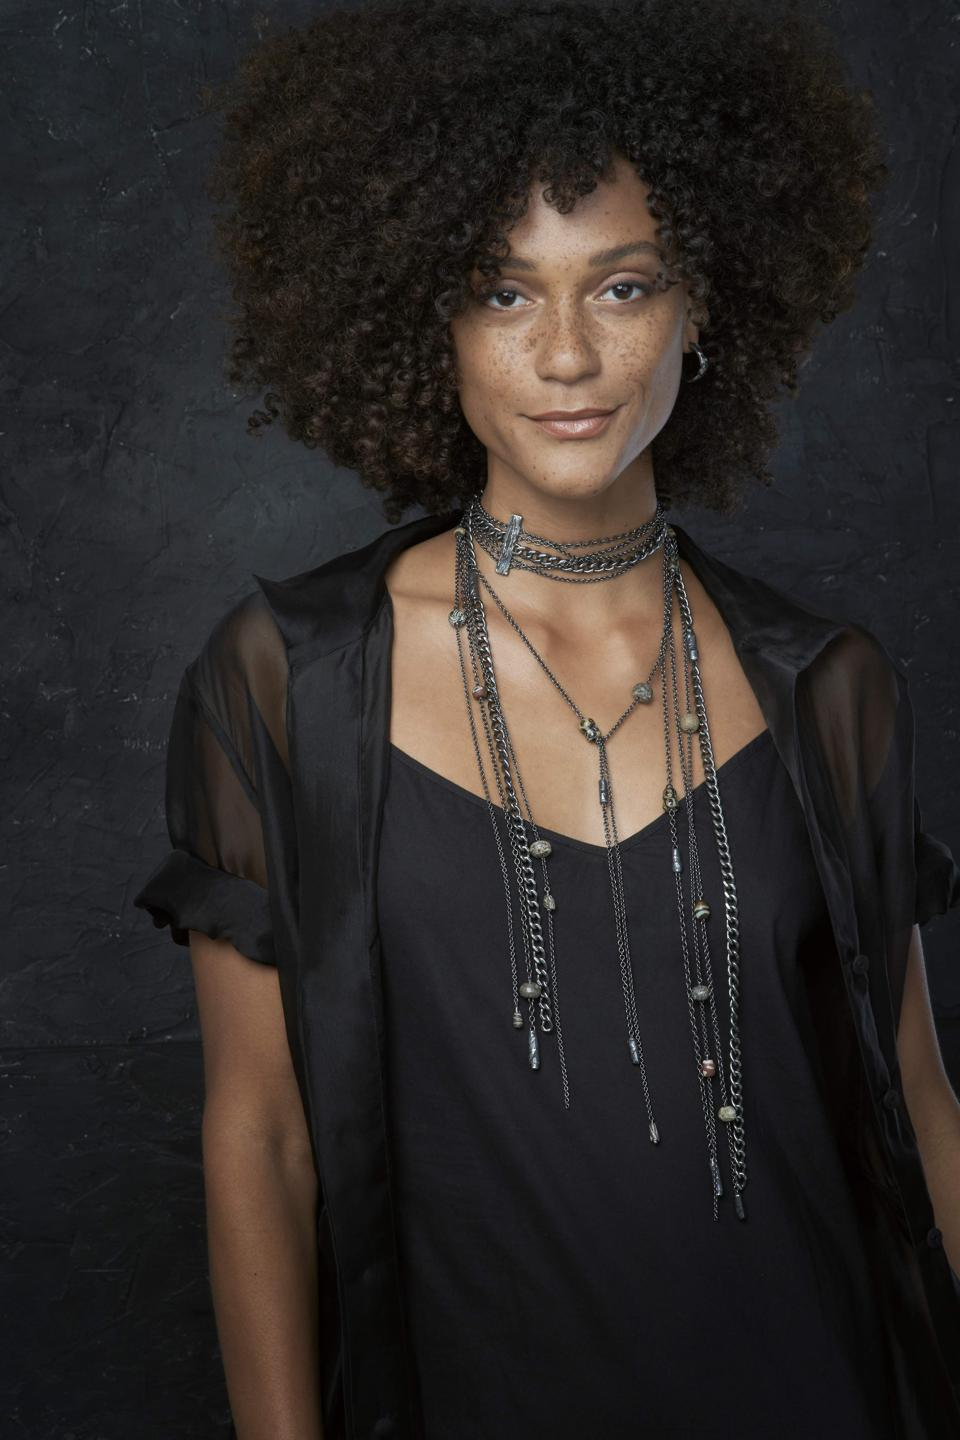 Sterling silver unisex lariat necklace by stôn designed by Latondra Newton